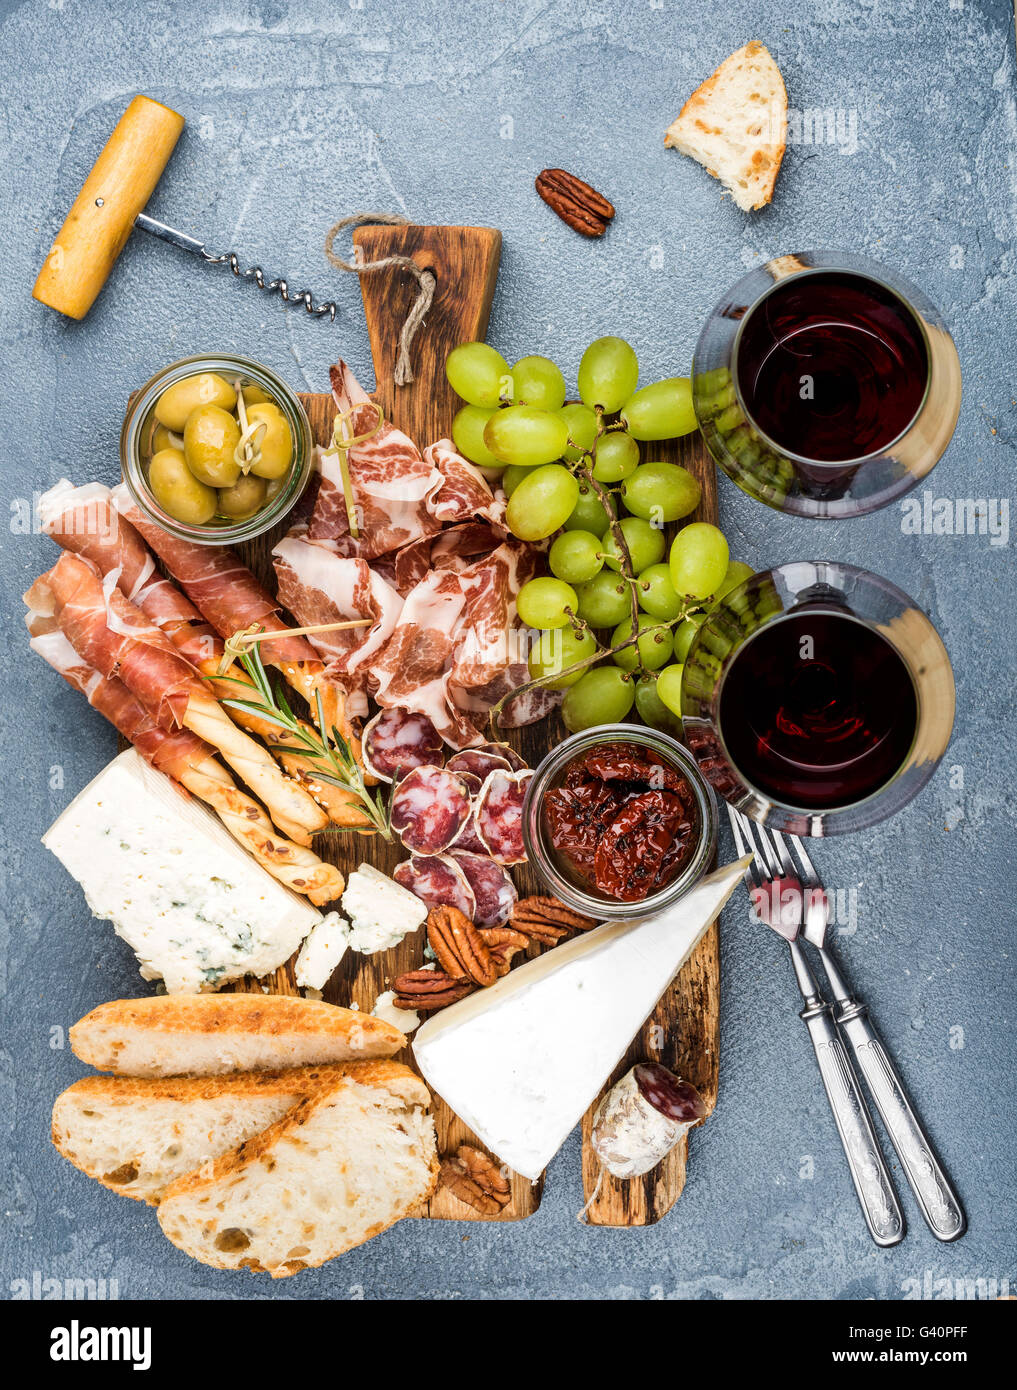 Cheese and meat appetizer selection. Prosciutto di Parma, salami, bread sticks, baguette slices, olives, sun-dried - Stock Image